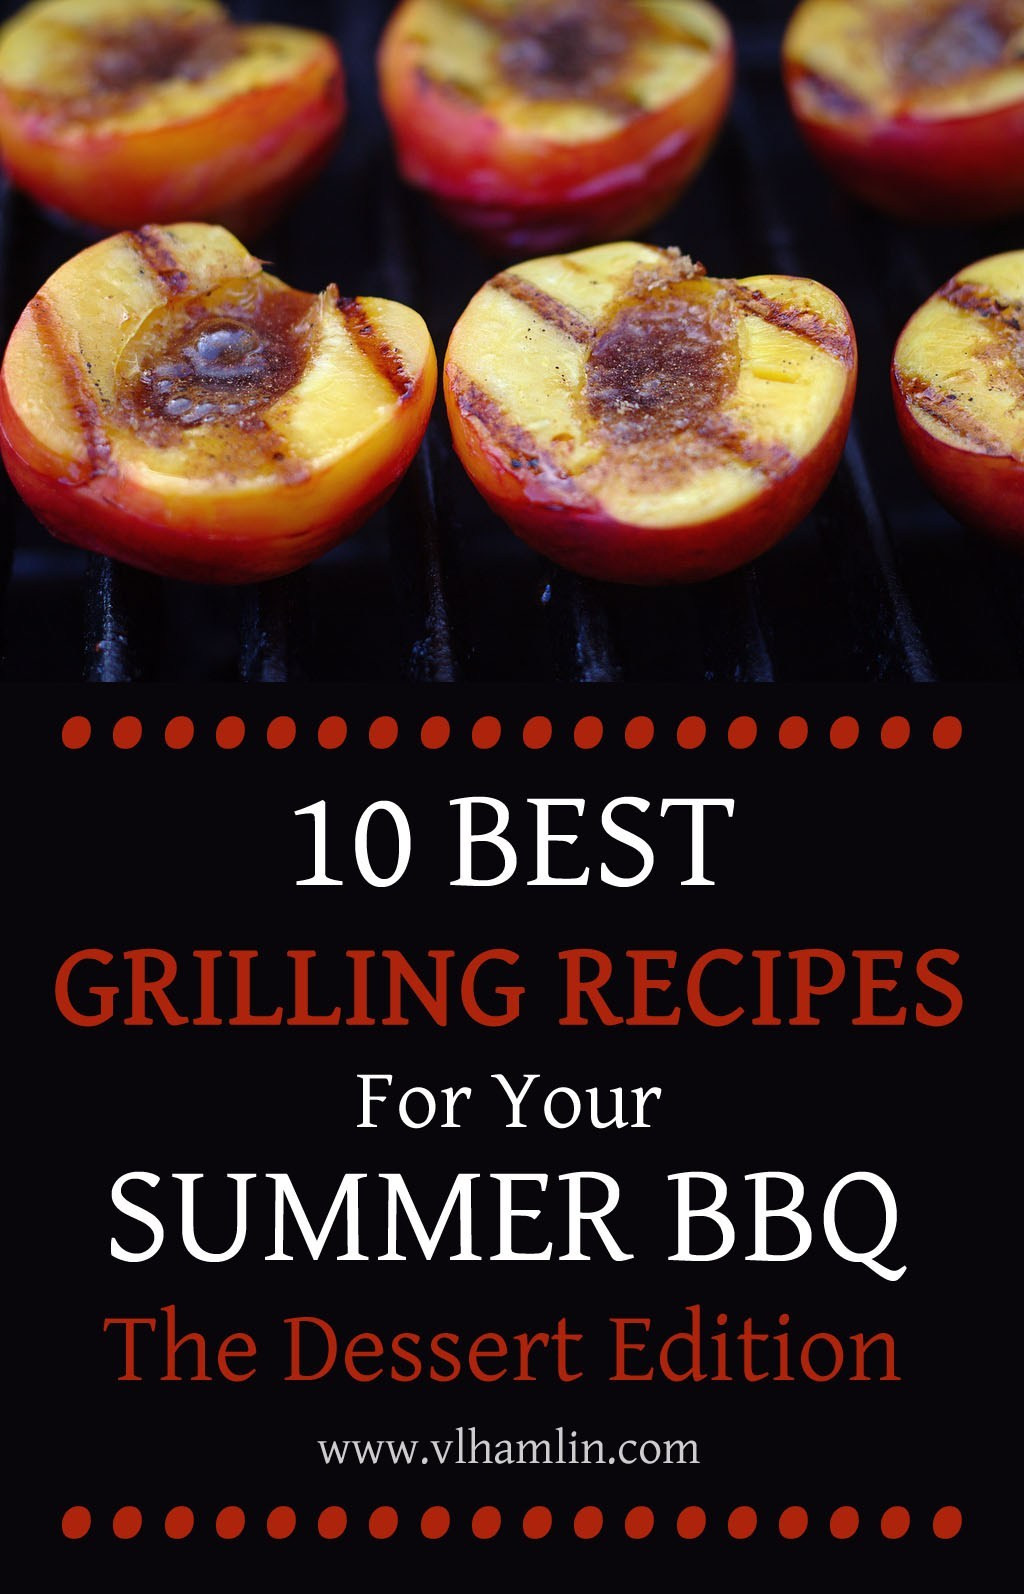 Summertime Bbq Desserts  10 Best Grilling Recipes for Your Summer BBQ The Dessert